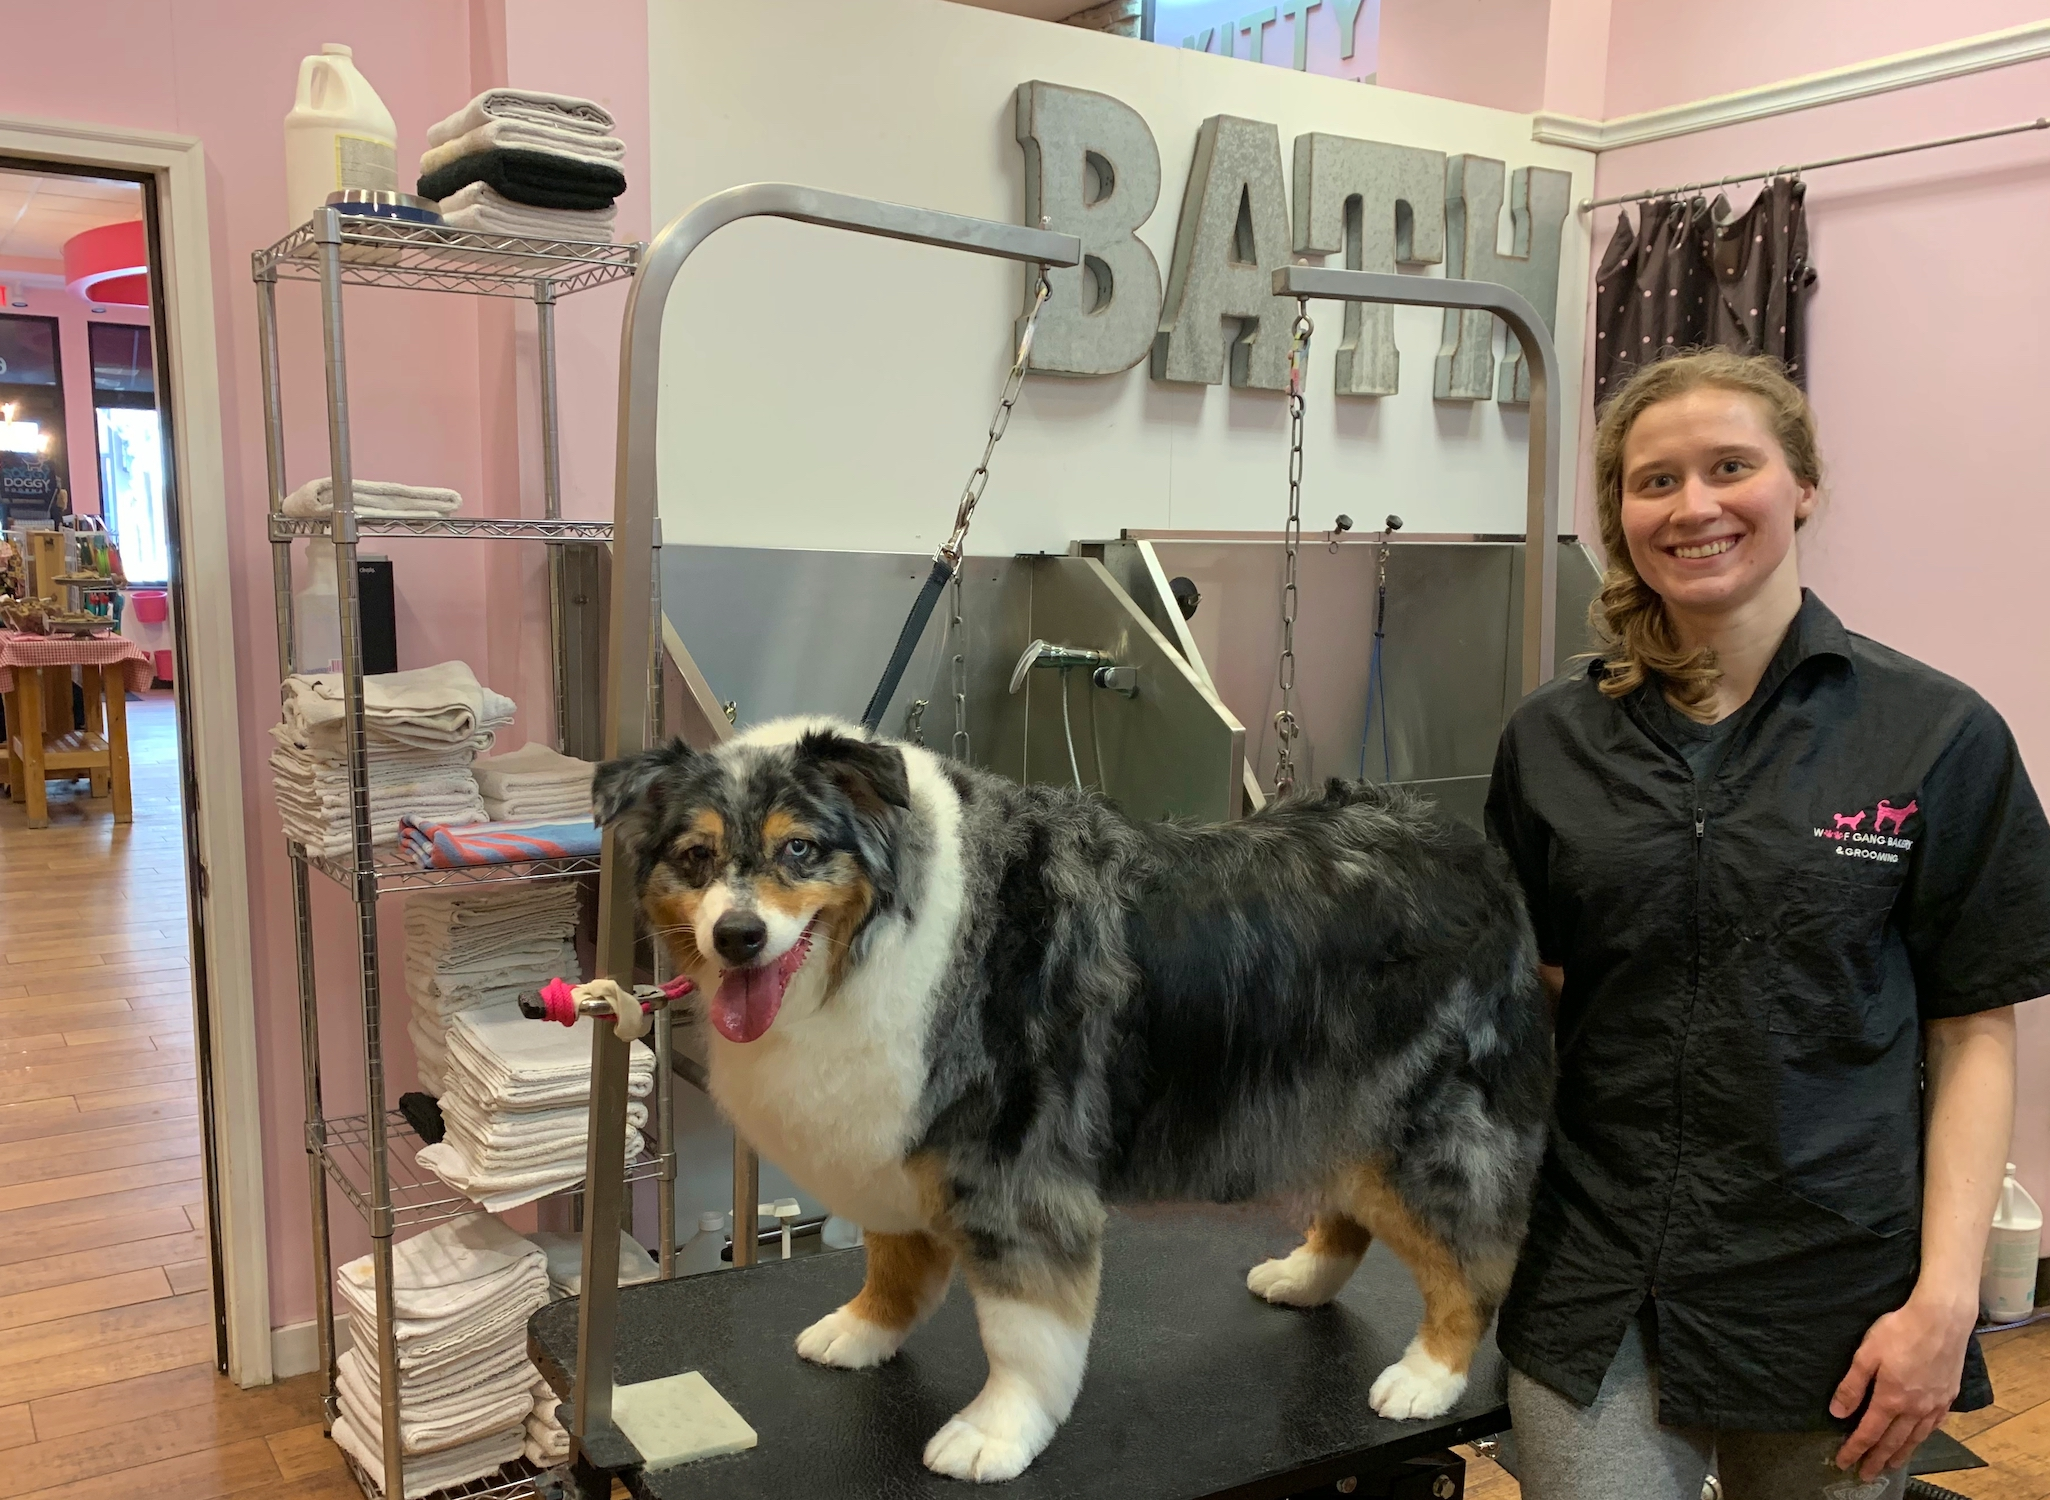 Woof Gang Groomer with a fluffy dog before his haircut